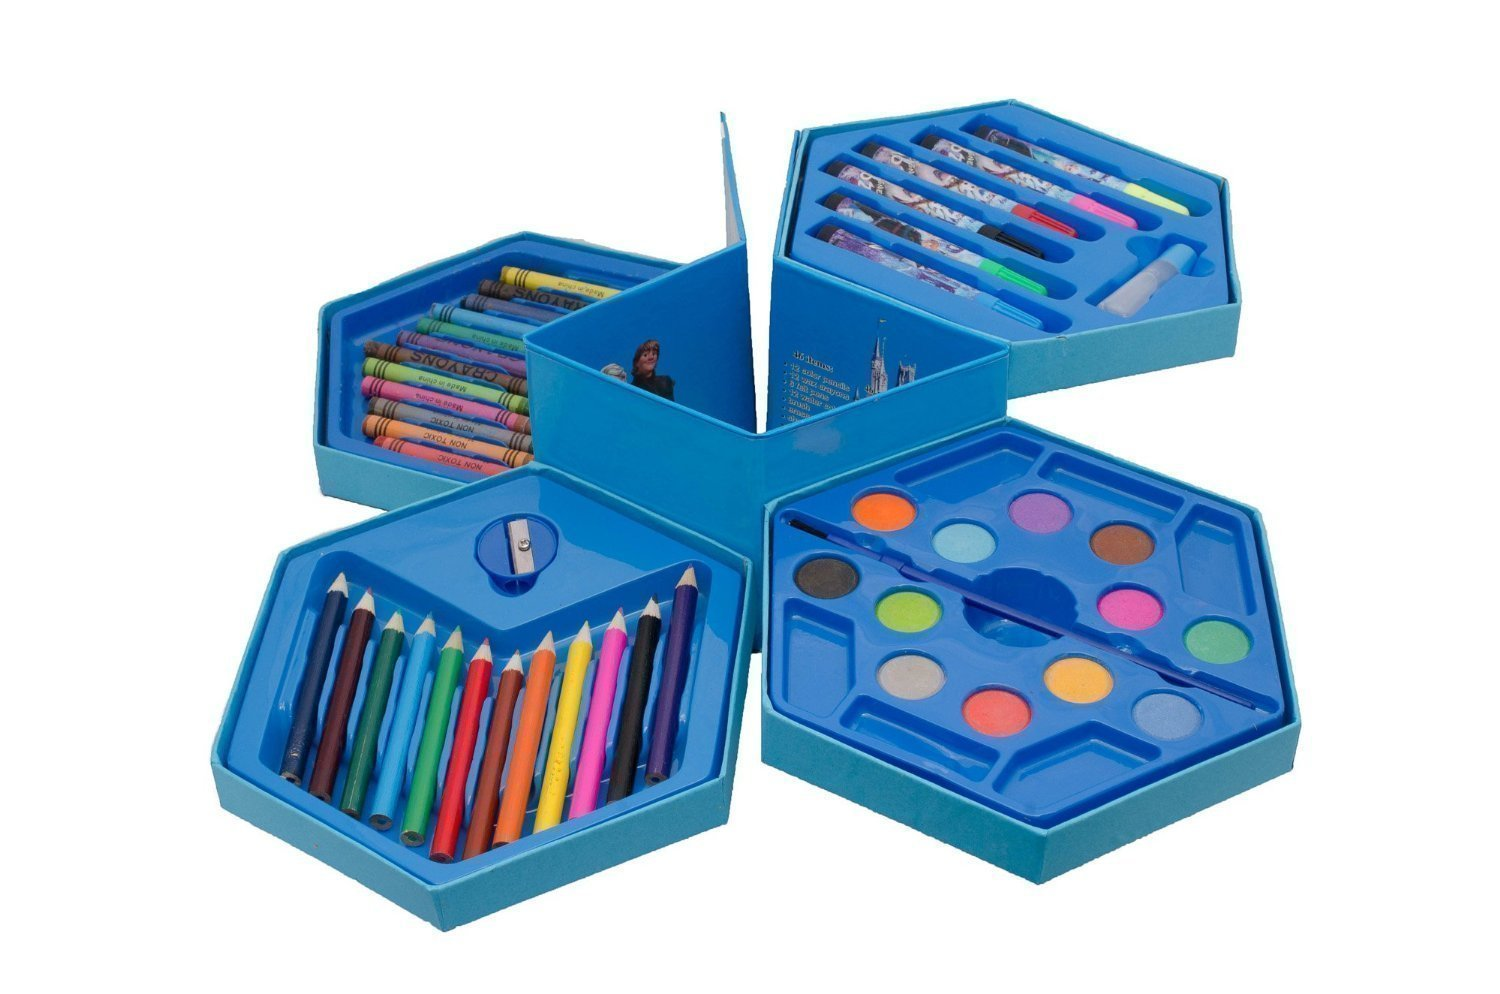 46 Pcs Plastic Art Colour Set with Color Pencil, Crayons, Oil Pastel and Sketch Pens